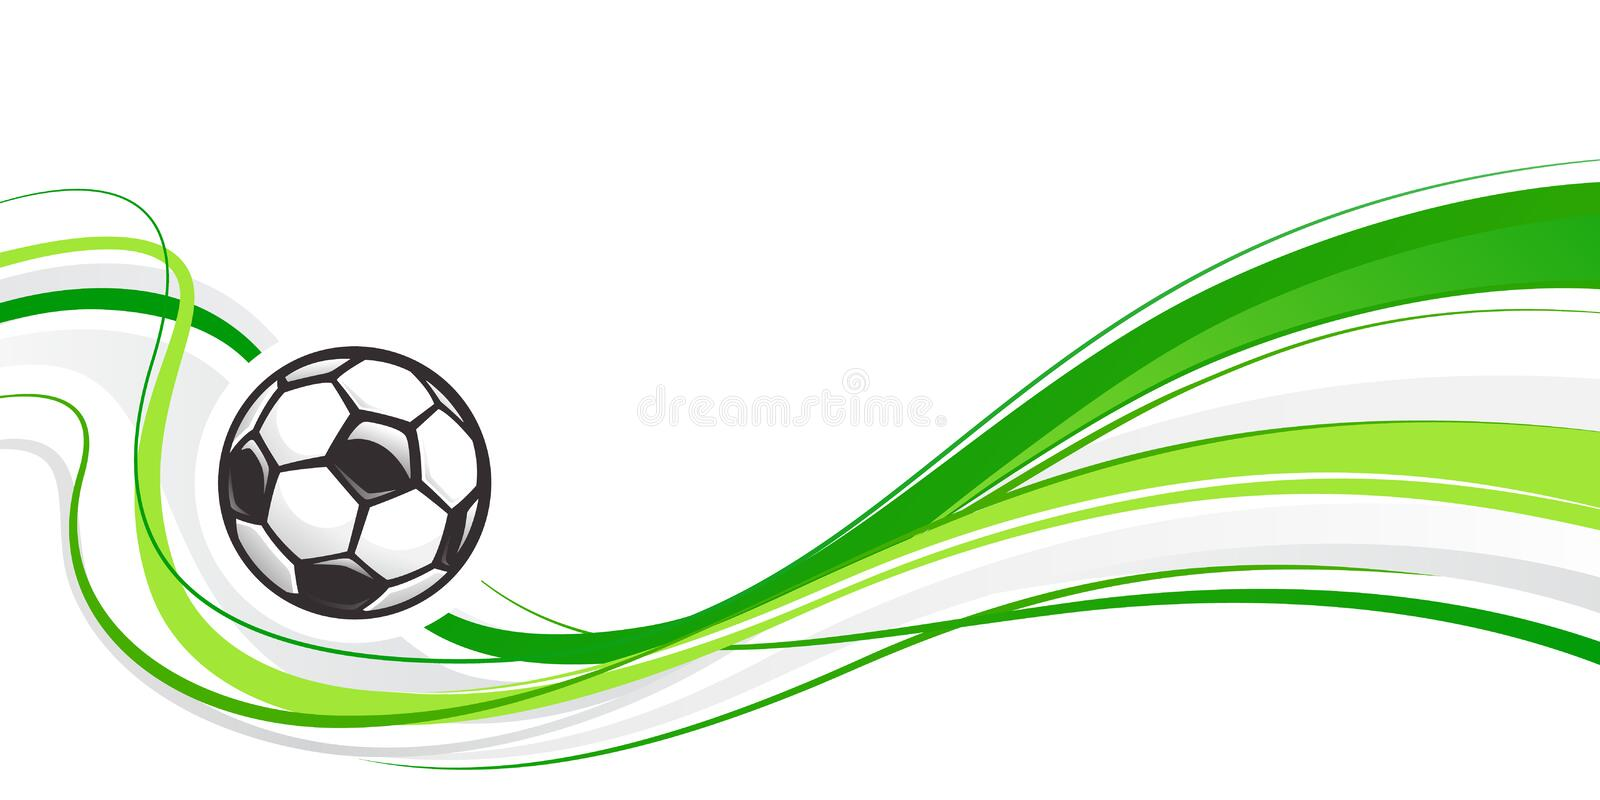 Soccer abstract background with ball and green waves. Abstract wave football element for design. Football ball. vector illustration